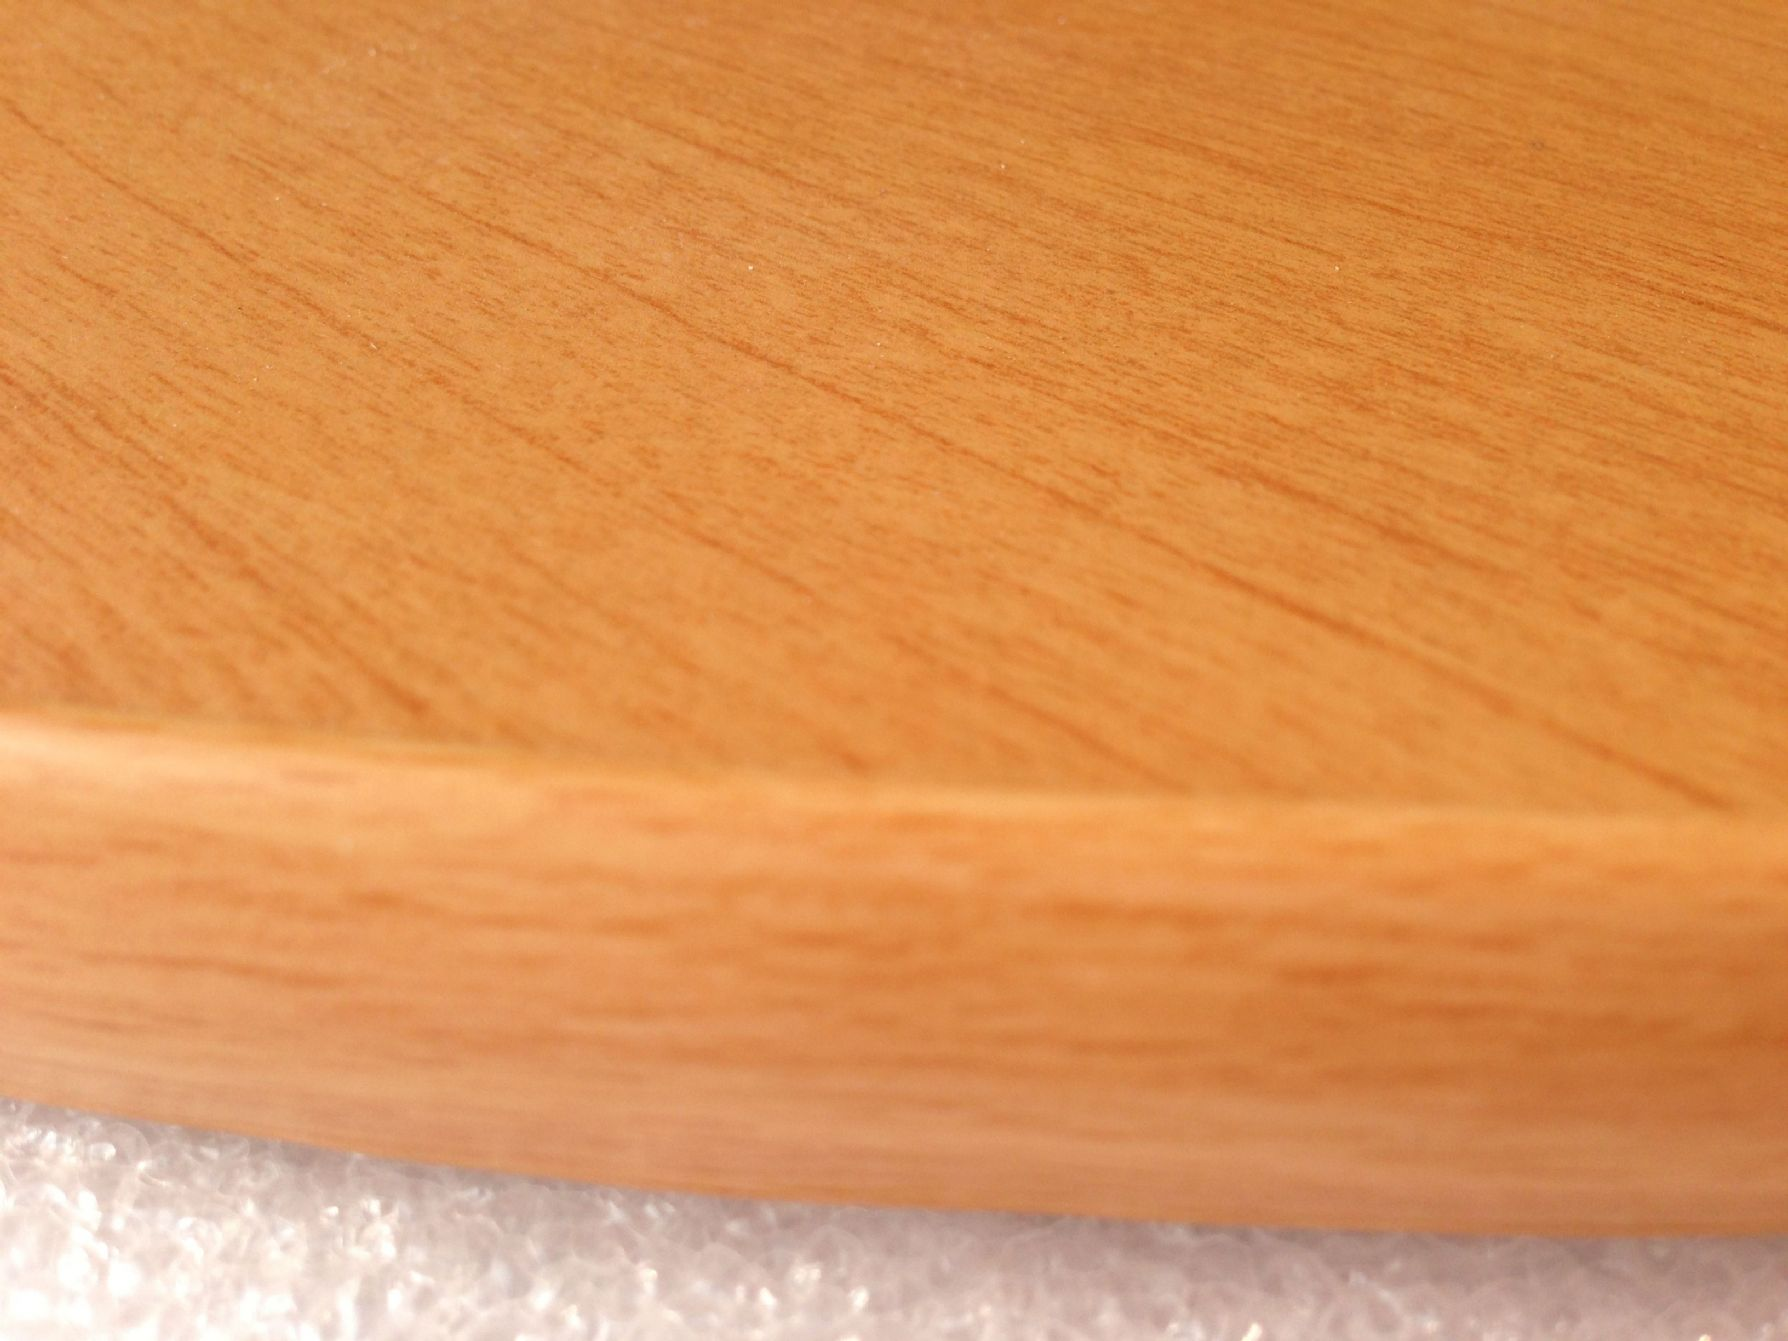 Wooden Table Top : Round Wood Table Tops. Full resolution‎  image, nominally Width 1788 Height 1341 pixels, image with #AC611F.